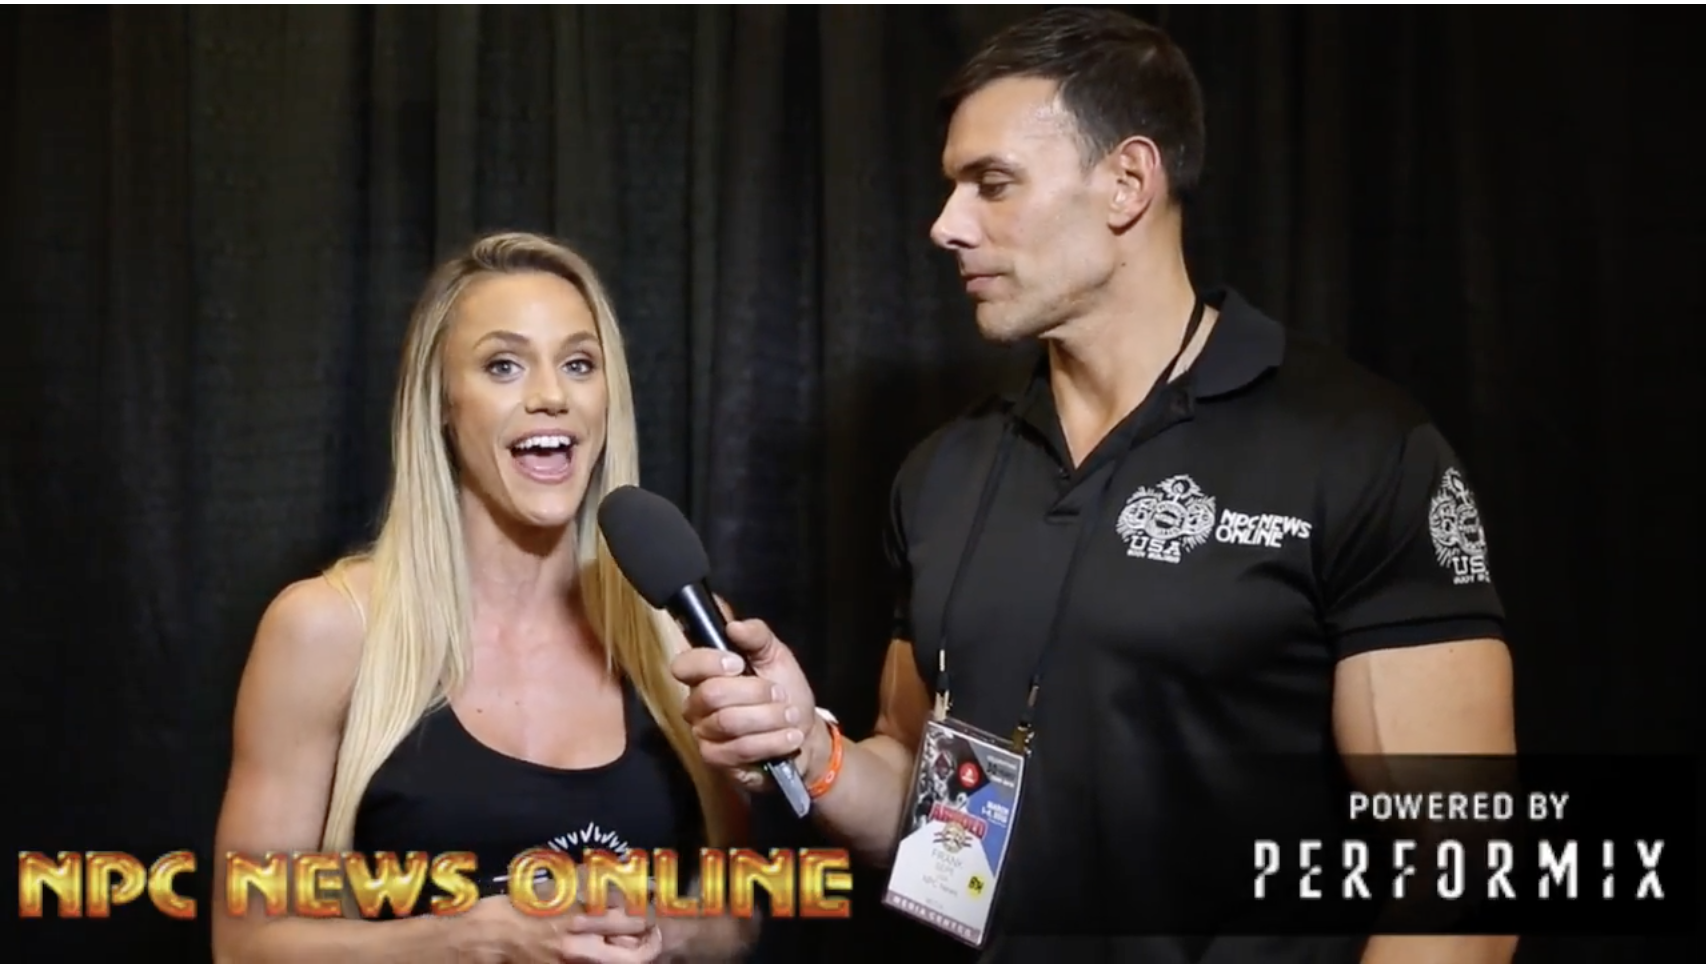 IFBB Bikini Pro Tawna Eubanks At The 2018 Arnold: Interviewed By Frank Sepe